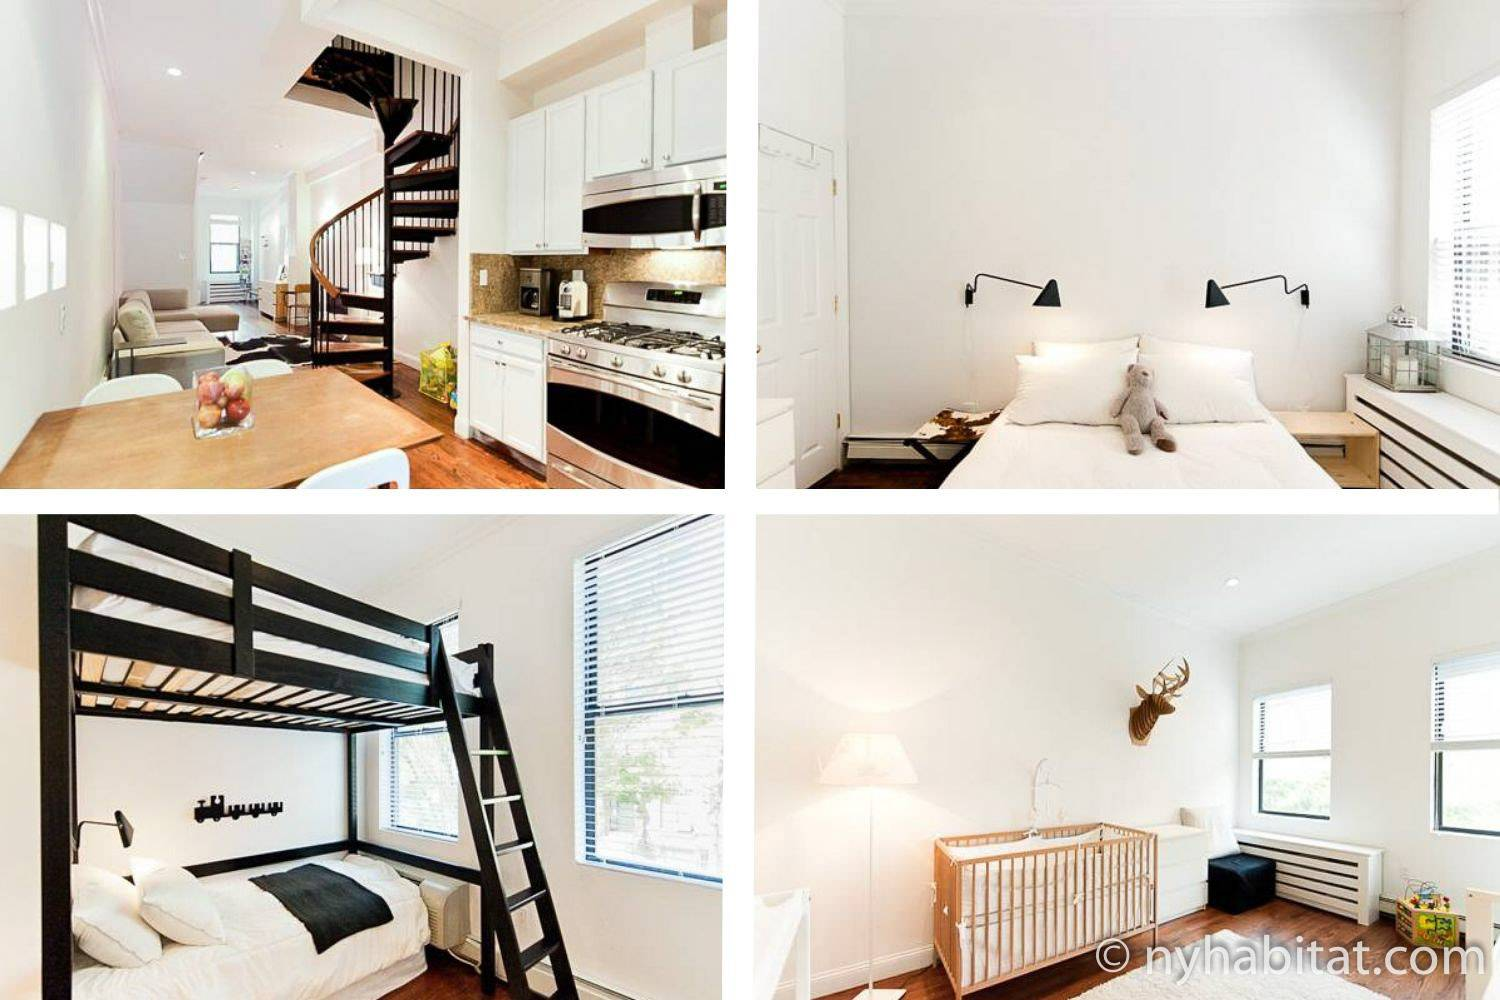 Collage image of bedrooms with bunkbeds and baby crib and kitchen of Harlem furnished rental NY-17189